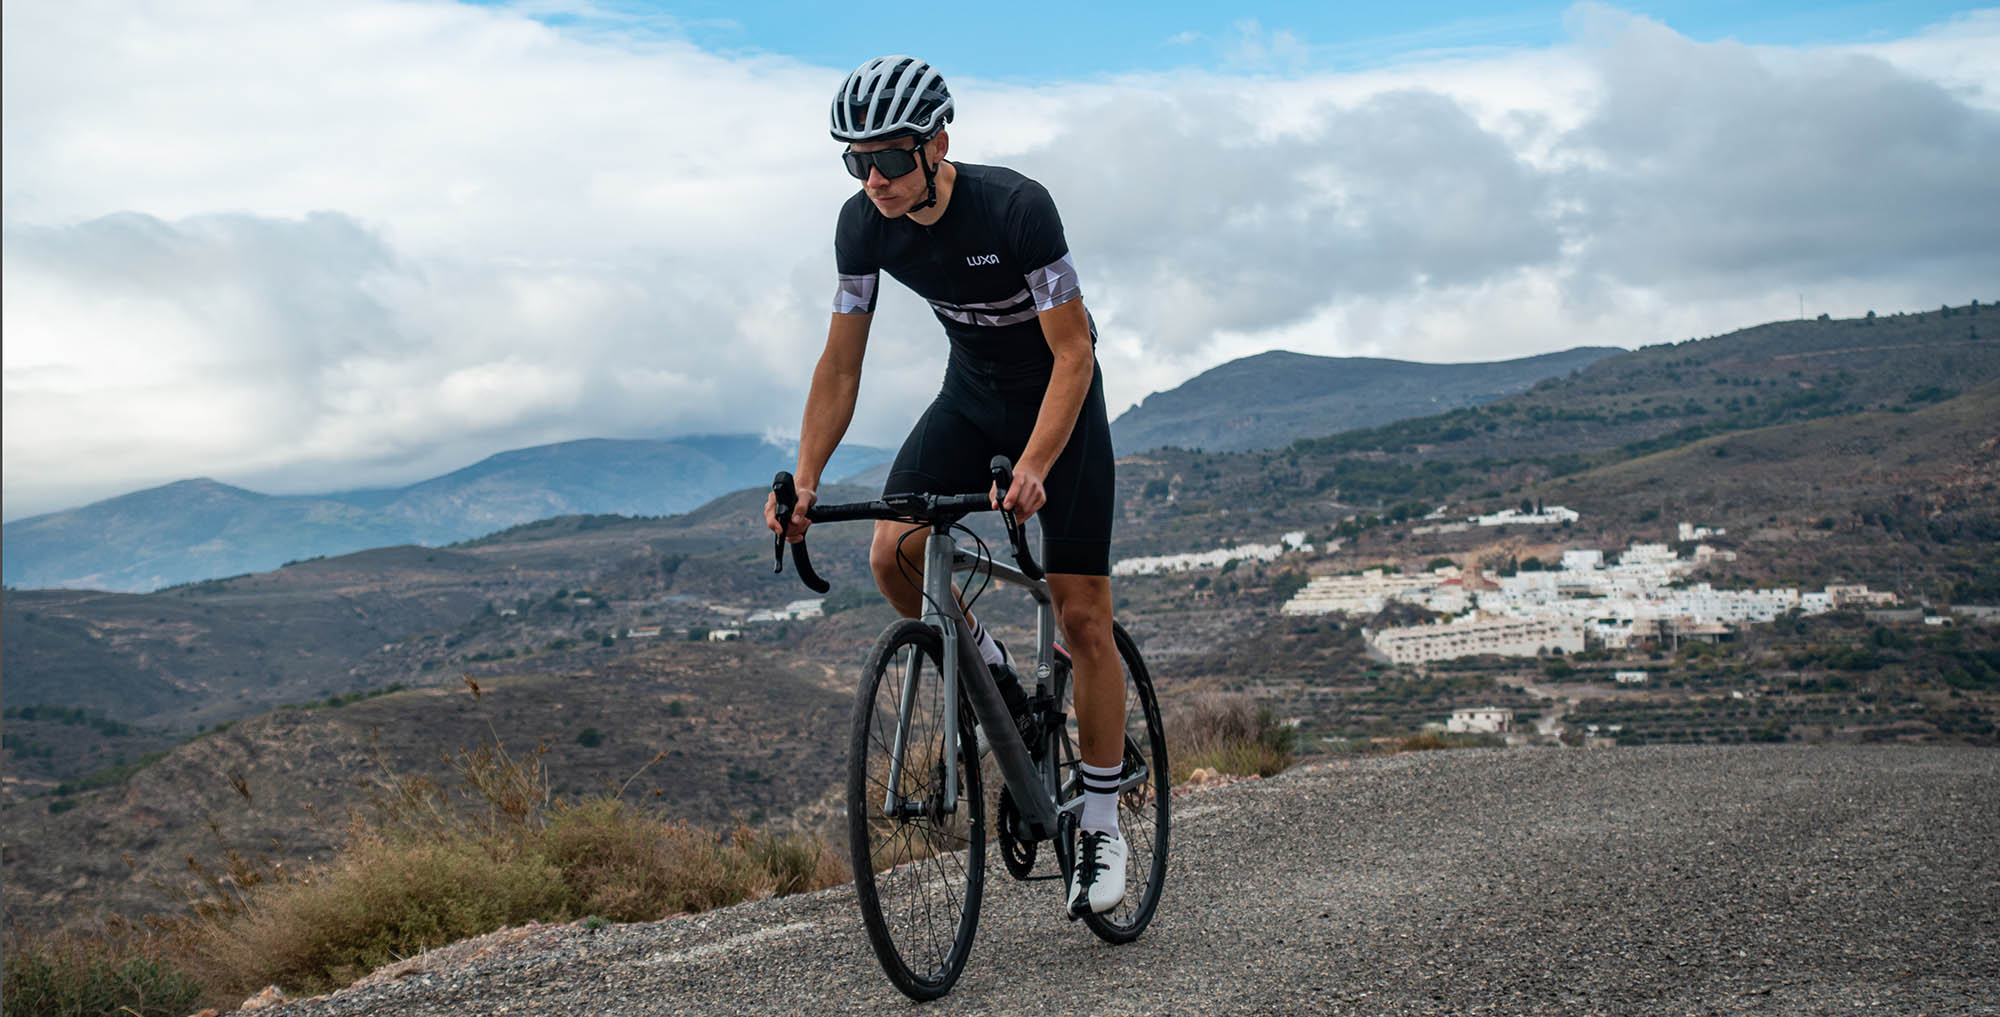 road cyclist in Andalusia wear Luxa jersey and white socks with stripes